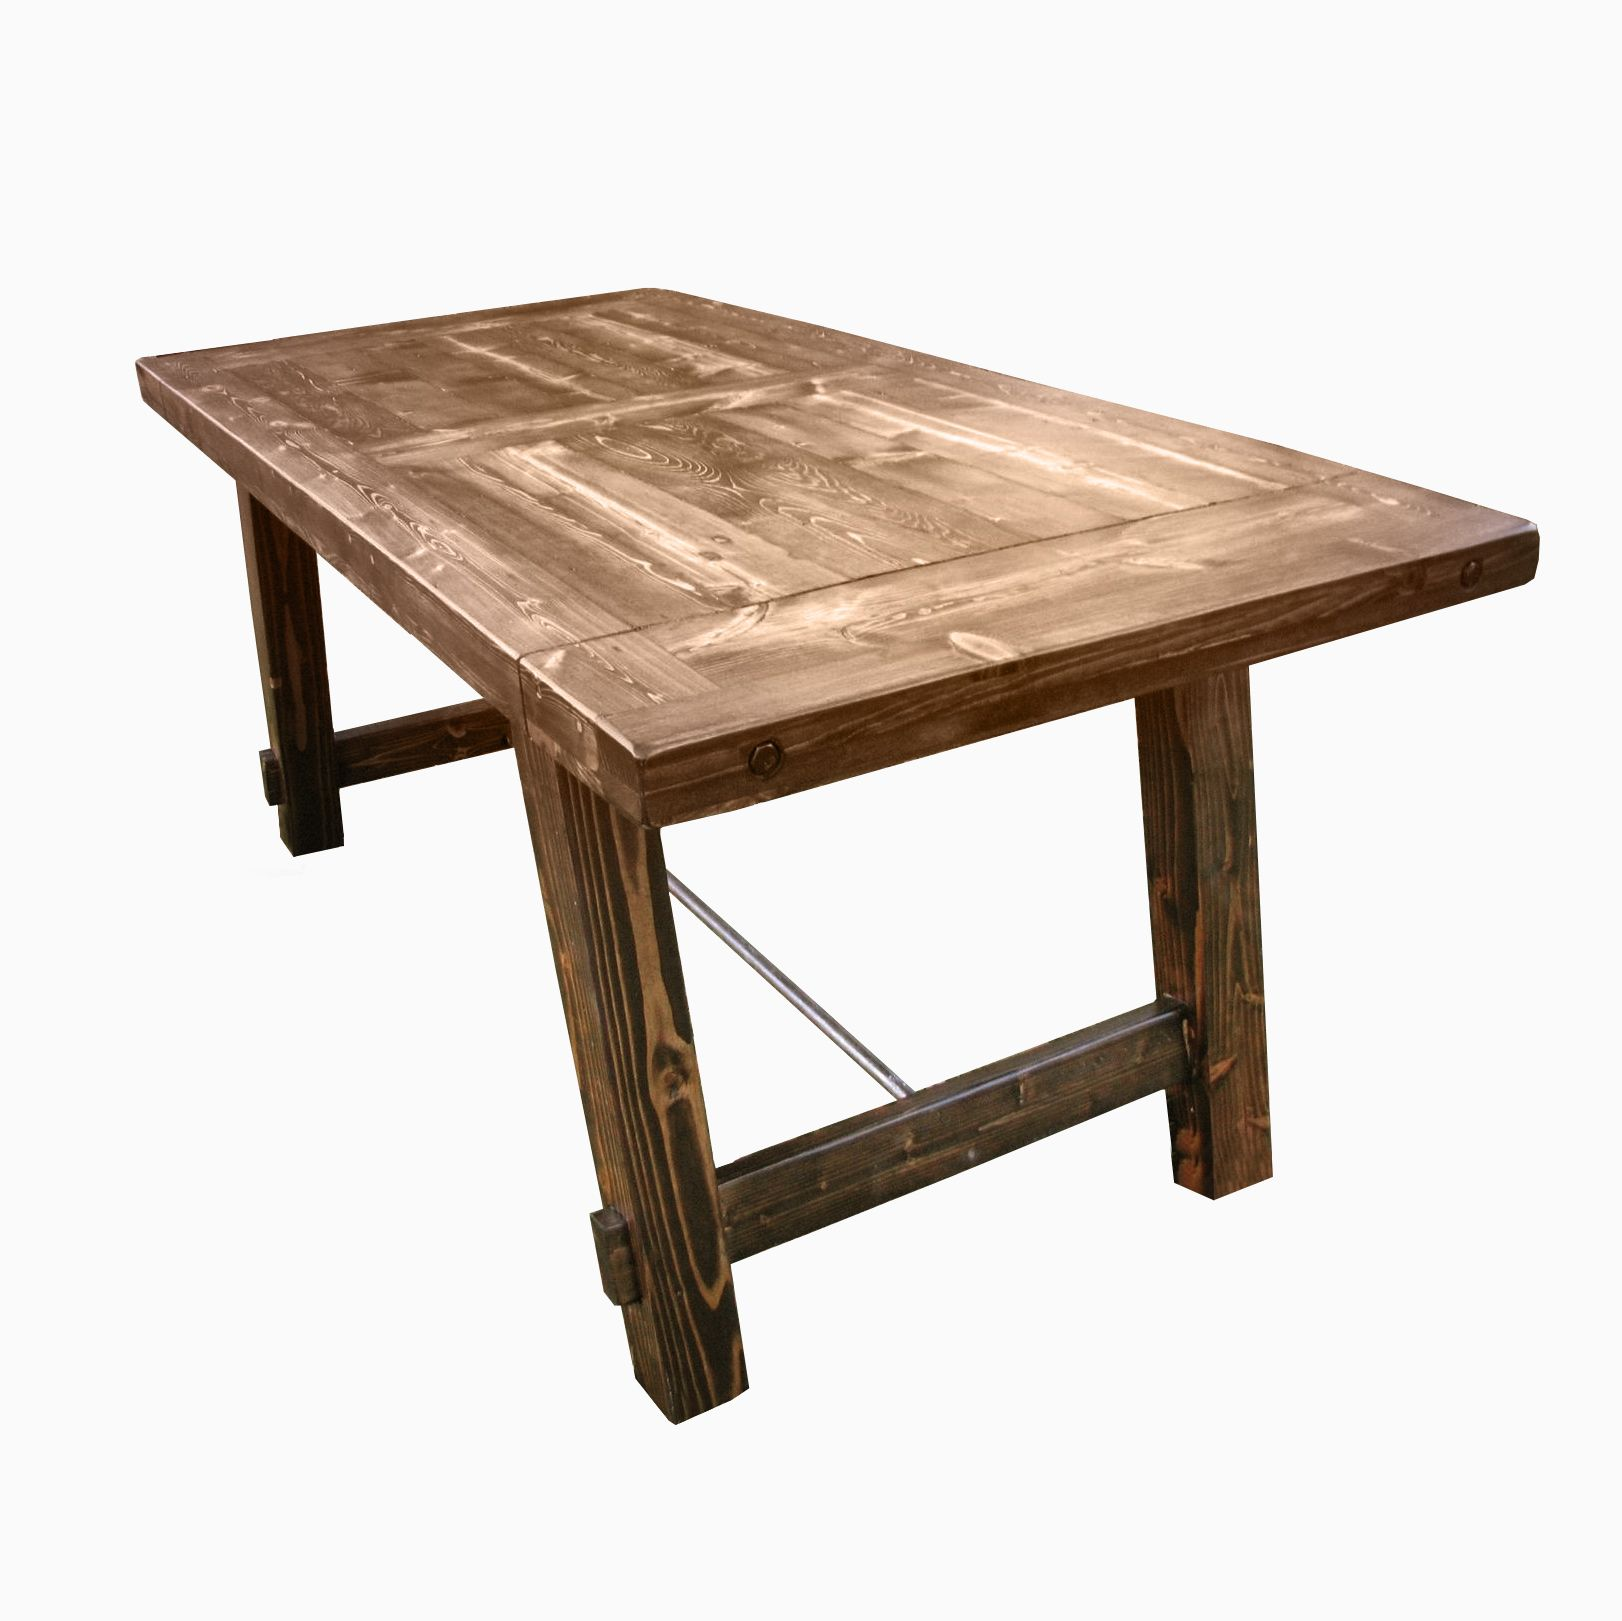 Harvest Kitchen Table Buy a custom country harvest dining table made to order from custom custom made country harvest dining table workwithnaturefo